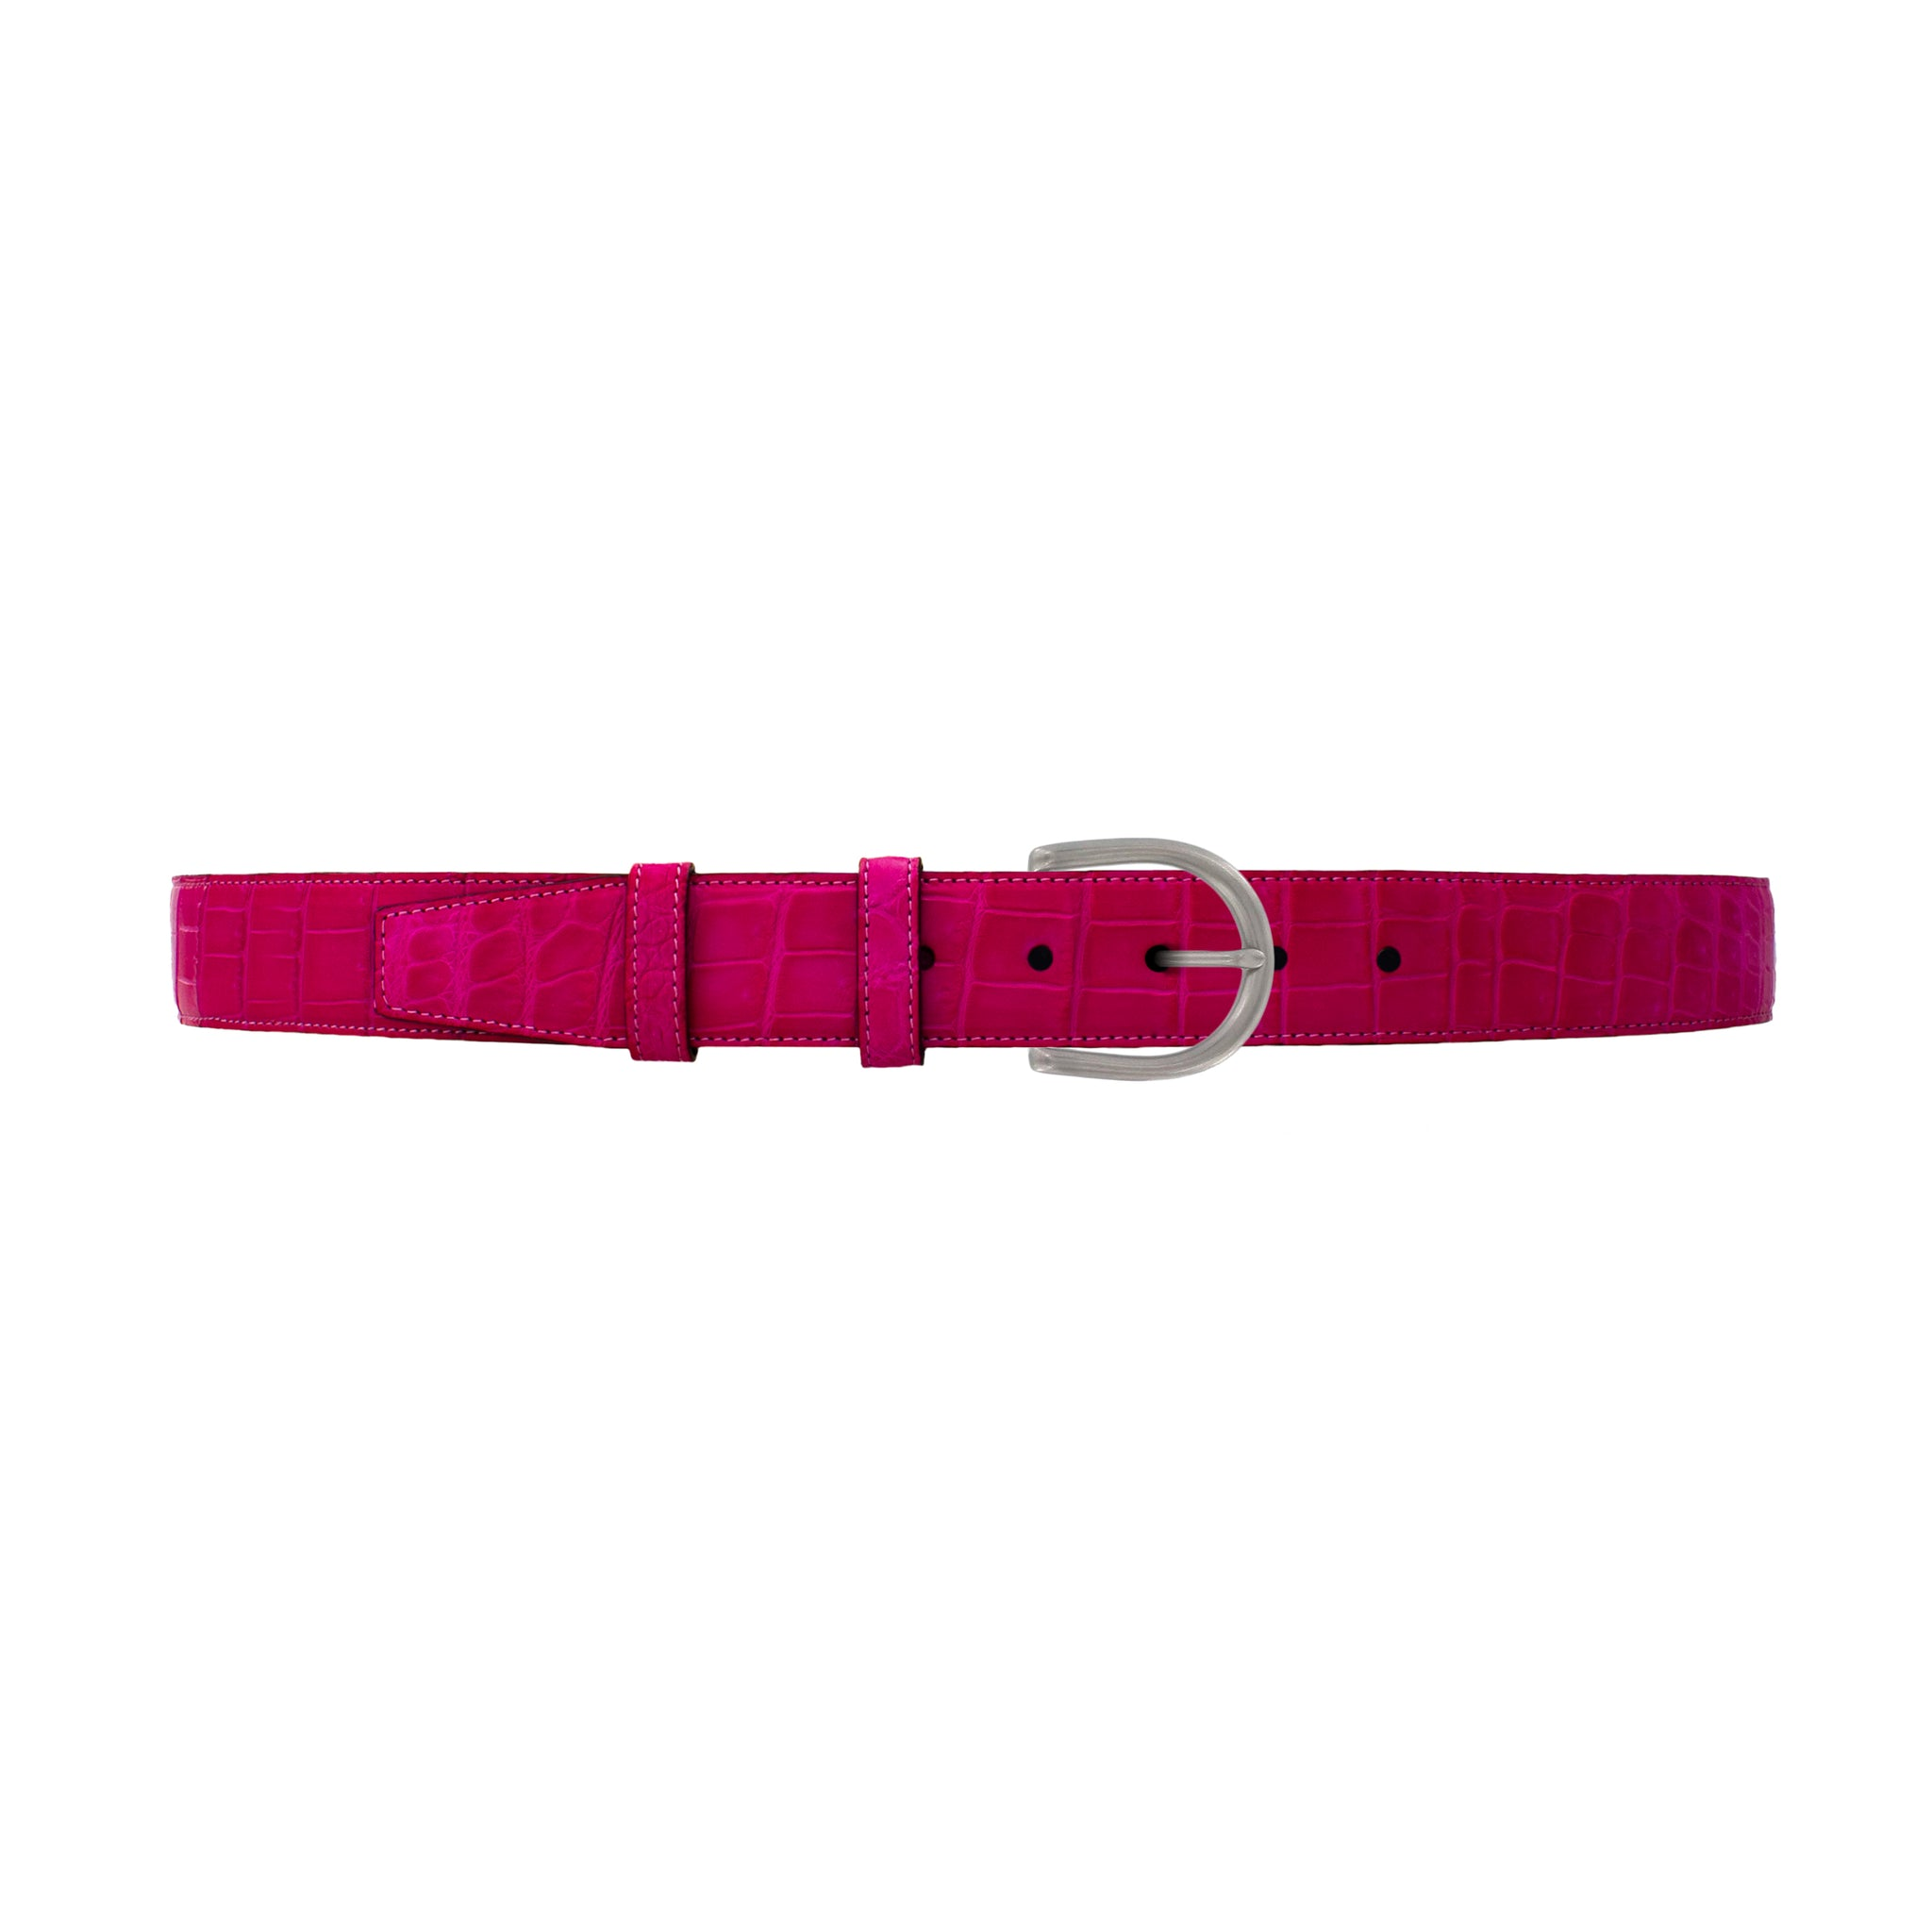 "1 1/2"" Magenta Seasonal Belt with Denver Casual Buckle in Matt Nickel"